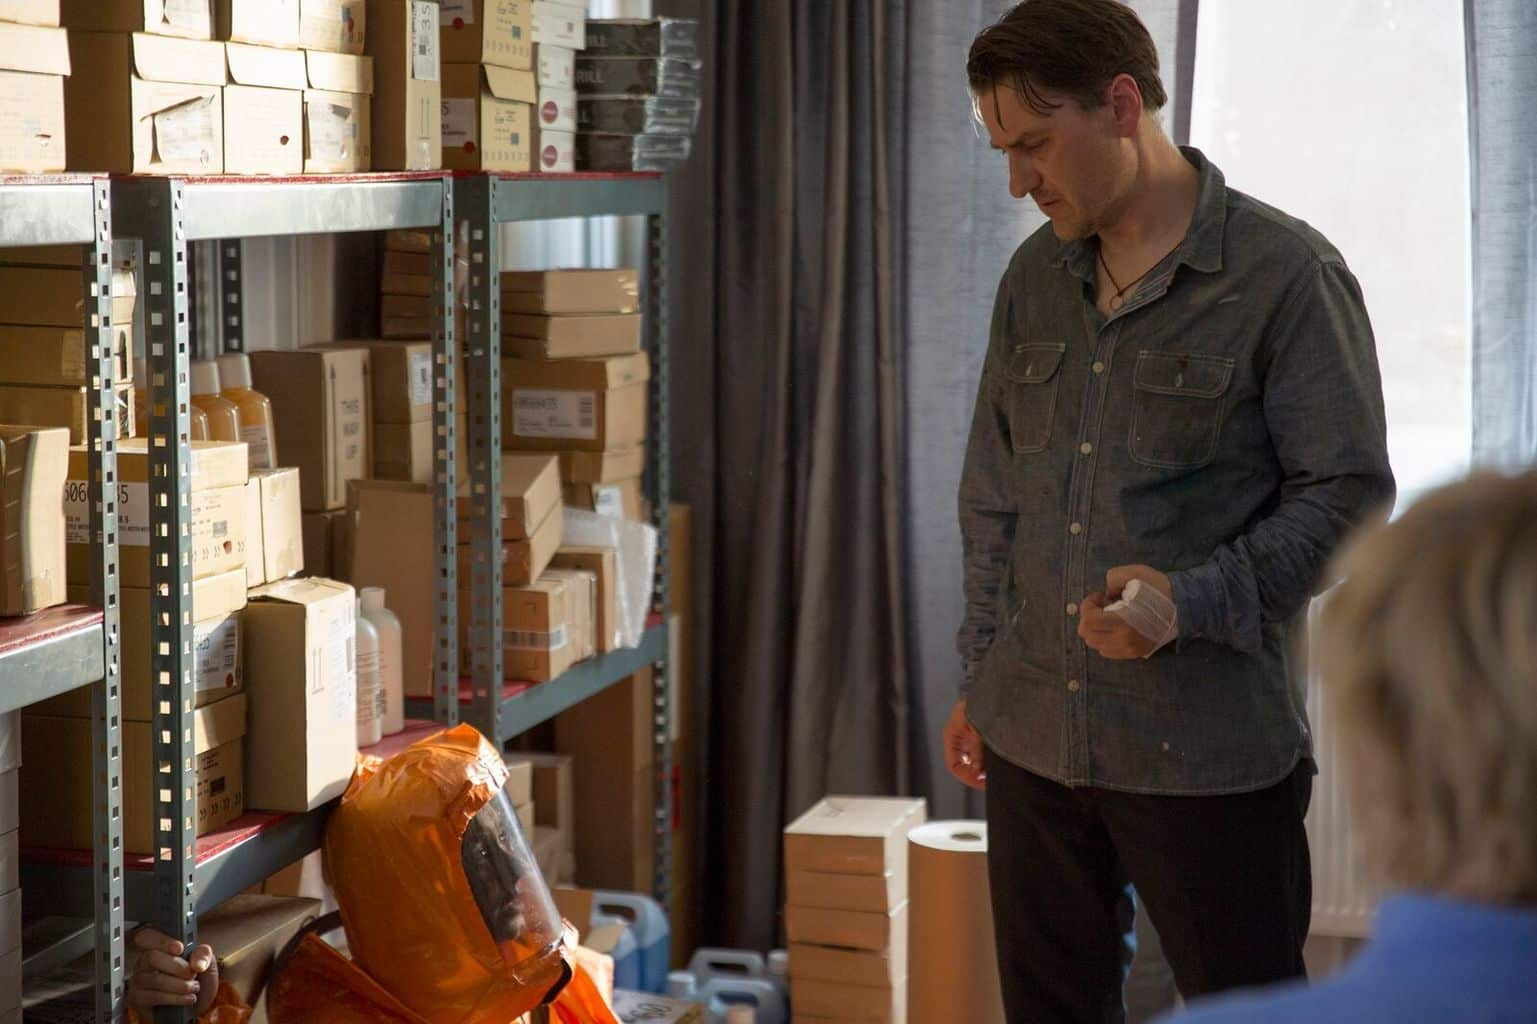 film reviews   movies   features   BRWC Review: Containment (2015)